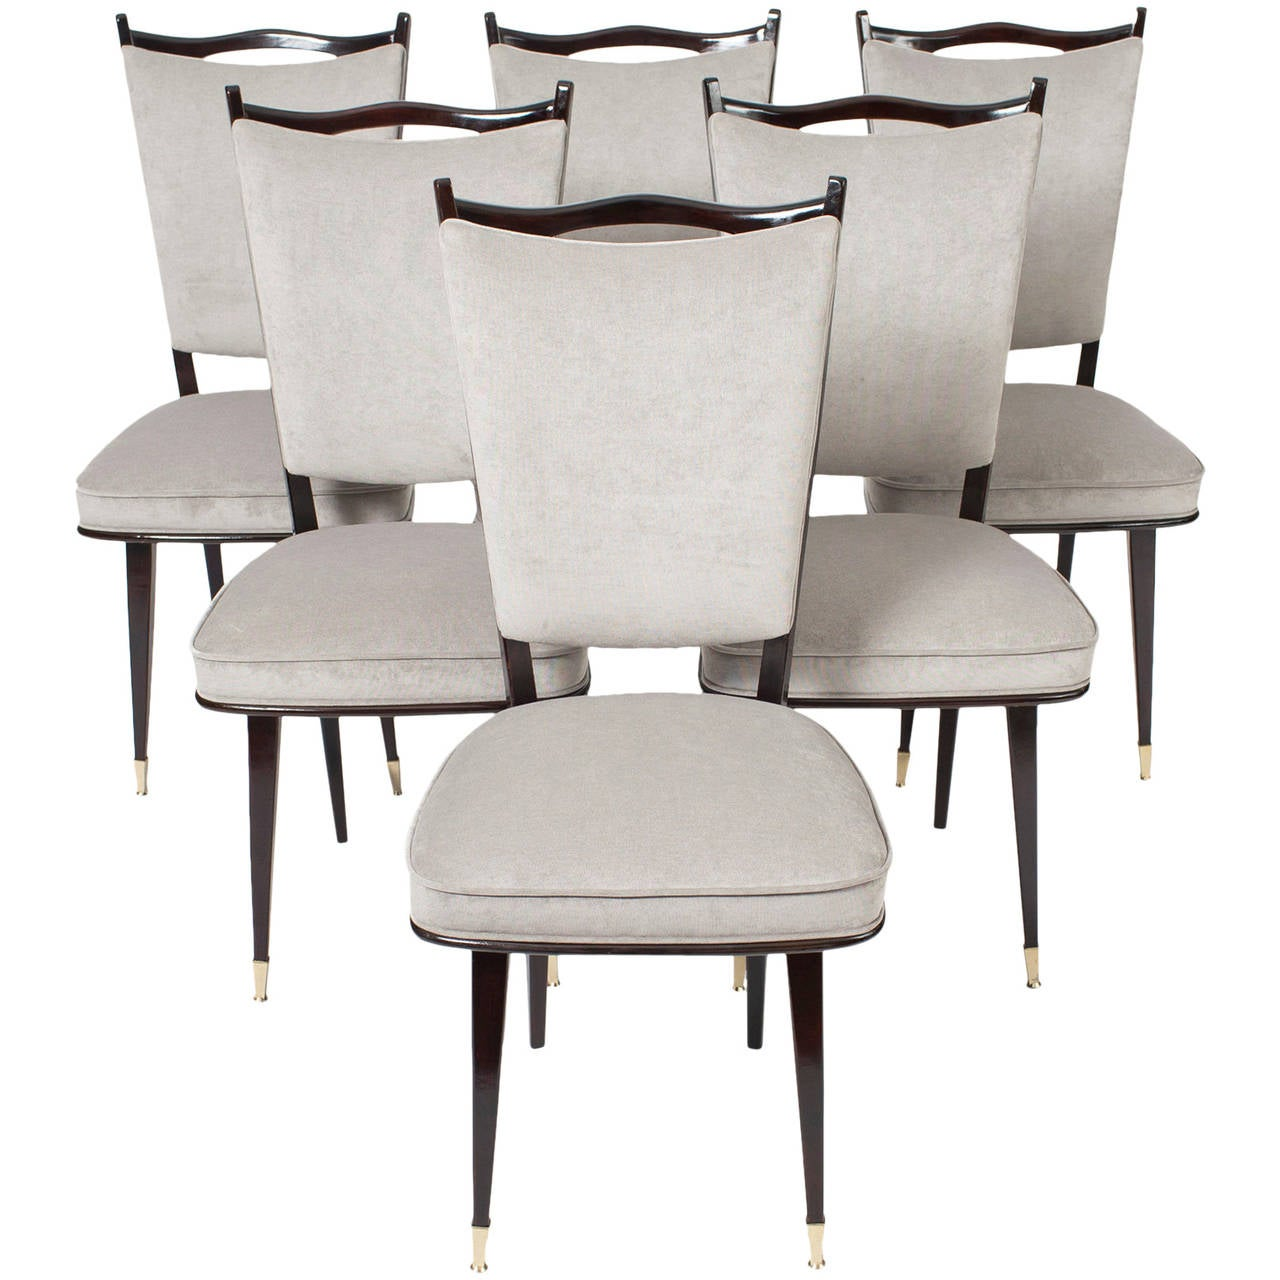 french set of six mid century modern dining chairs at 1stdibs. Black Bedroom Furniture Sets. Home Design Ideas